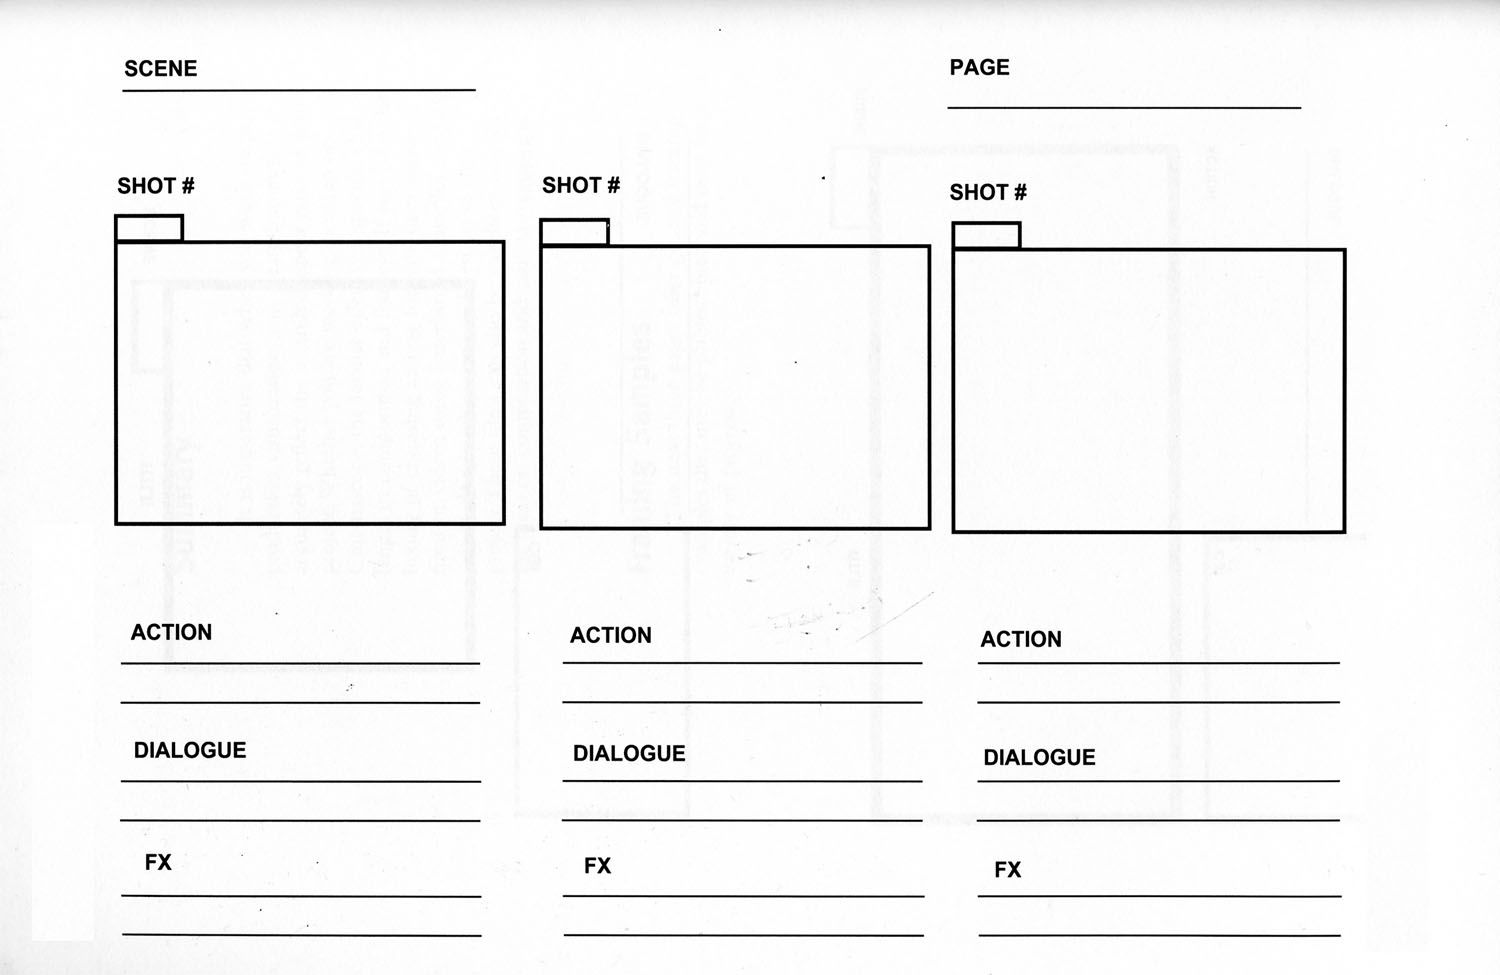 What StoryBoard Templates Do You Like To Use Let Us Know So We